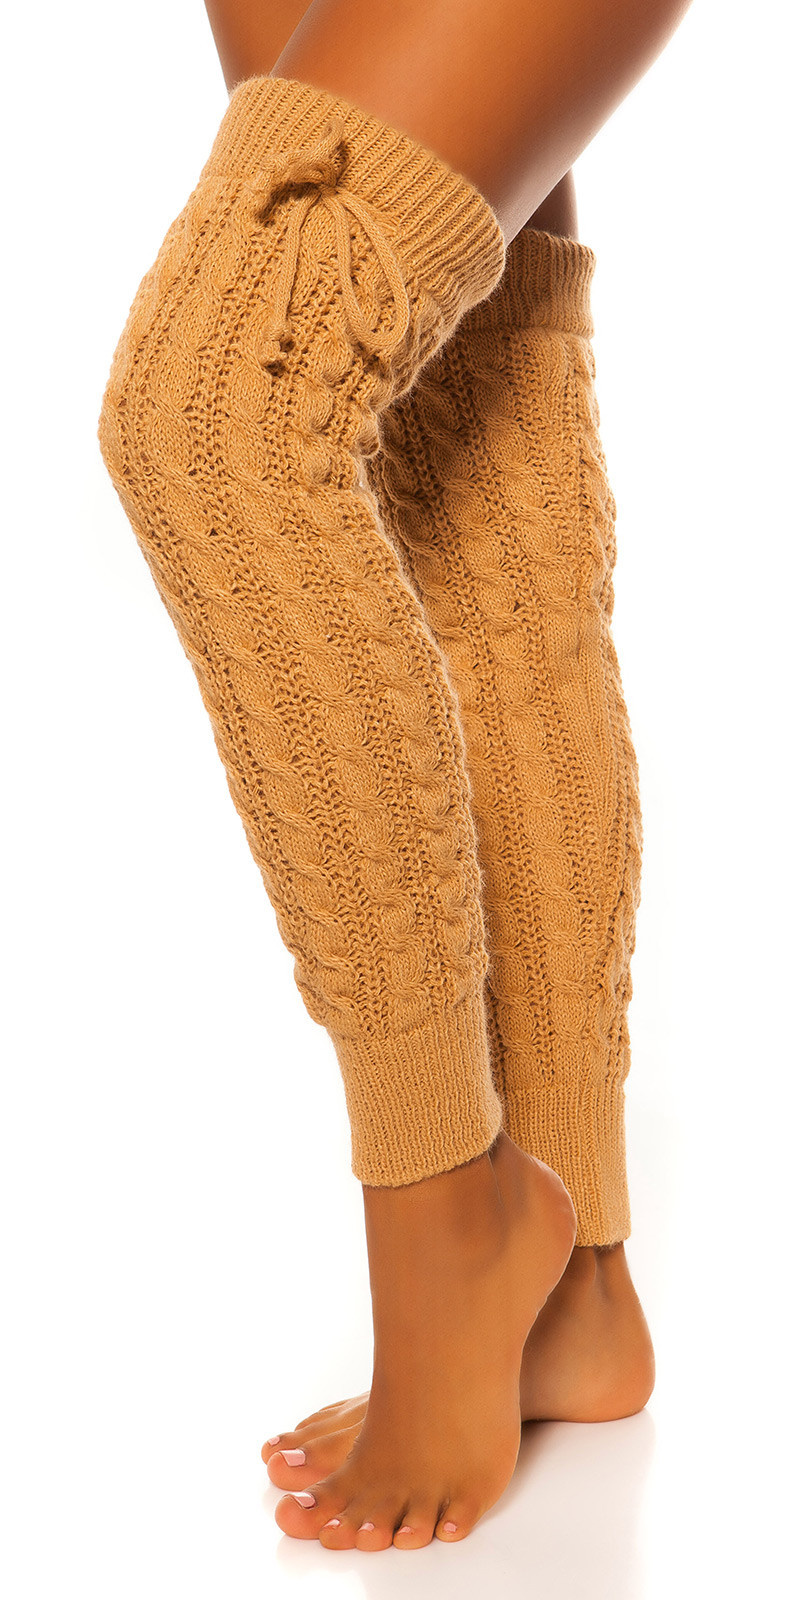 Sexy knit leg warmers with cable stitch pattern Beige